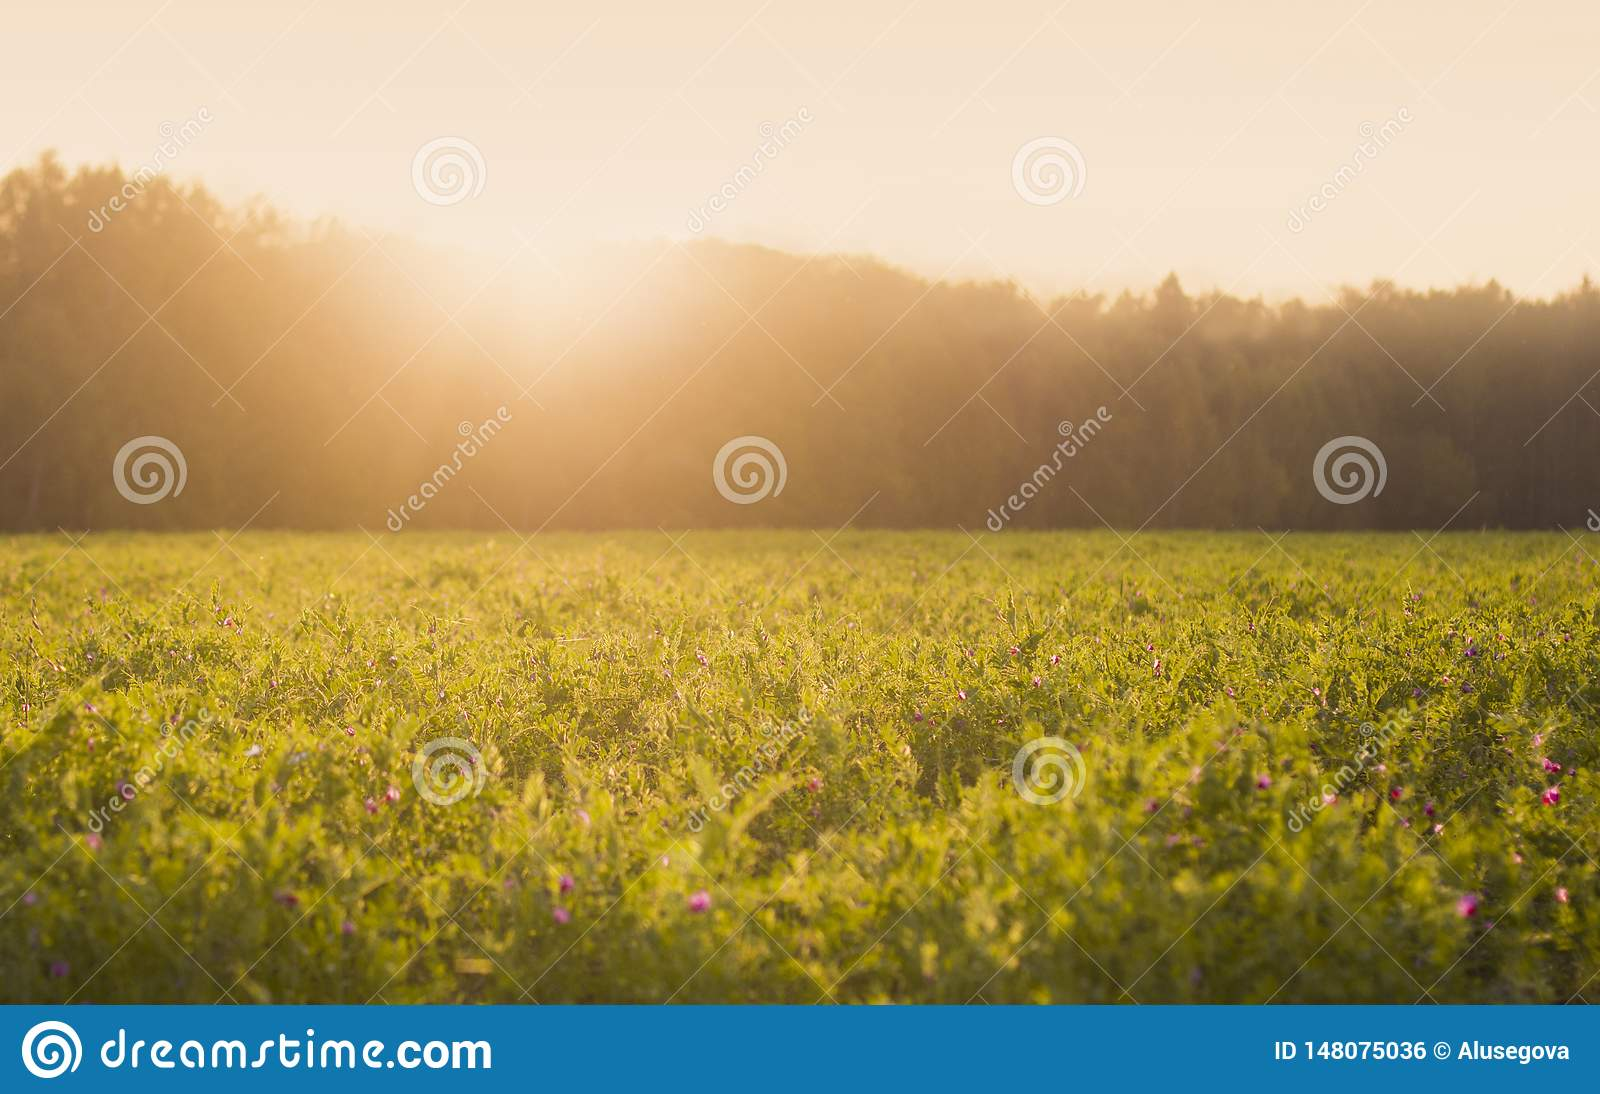 Sunny summer meadow with green grass and little flowers at sunset